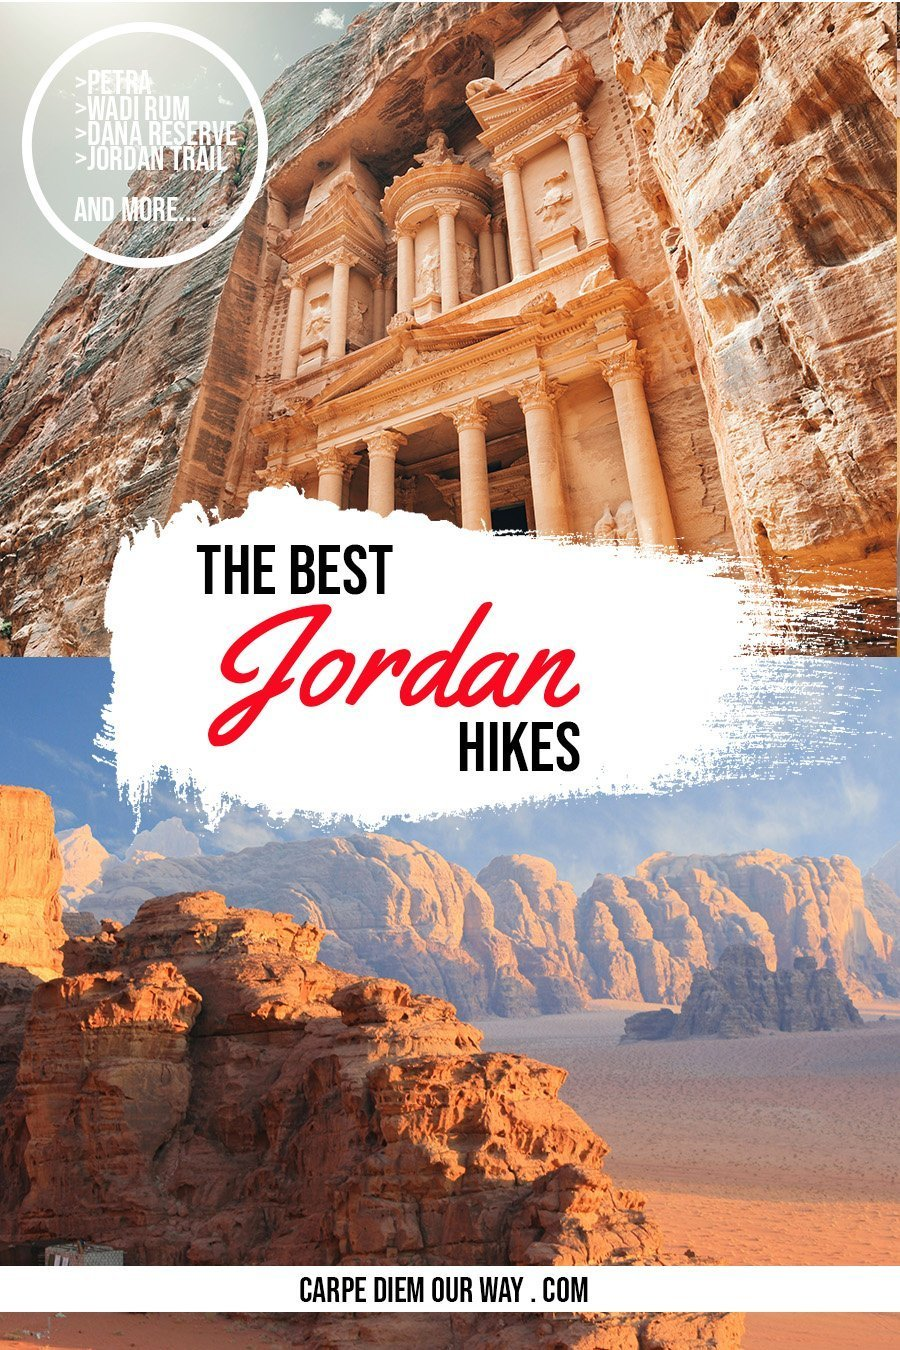 Hiking in Jordan and Trekking in Jordan